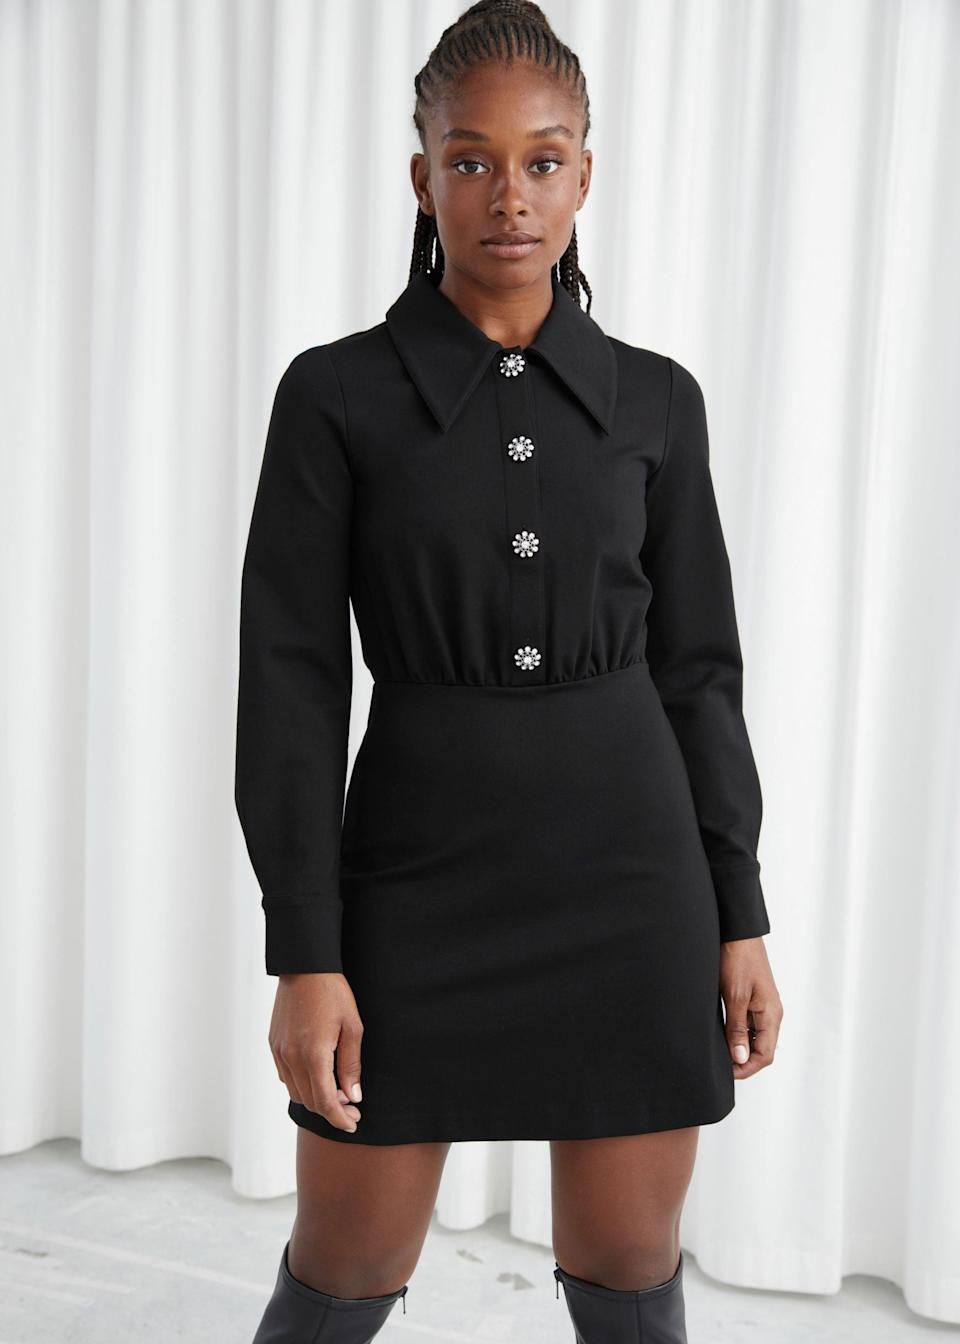 """<h2>& Other Stories</h2><br>Lovers of vintage will do a double-take — as we did — when they lay eyes on this perfectly-proportioned 1960s-inspired minidress, complete with sparkly buttons and a pointed collar. That's what we (and our readers) love about Stories, H&M's cooler-cousin shop — with design outposts in Stockholm, Paris, and Los Angeles, the store's offerings are just a little bit more offbeat and experimental that some of its mainstream competition.<br><br><strong>& Other Stories</strong> Structured Diamanté Button Mini Dress, $, available at <a href=""""https://go.skimresources.com/?id=30283X879131&url=https%3A%2F%2Fwww.stories.com%2Fen_usd%2Fclothing%2Fdresses%2Fmini-dresses%2Fproduct.structured-diamant%25C3%25A9-button-mini-dress-black.0938896001.html"""" rel=""""nofollow noopener"""" target=""""_blank"""" data-ylk=""""slk:& Other Stories"""" class=""""link rapid-noclick-resp"""">& Other Stories</a>"""